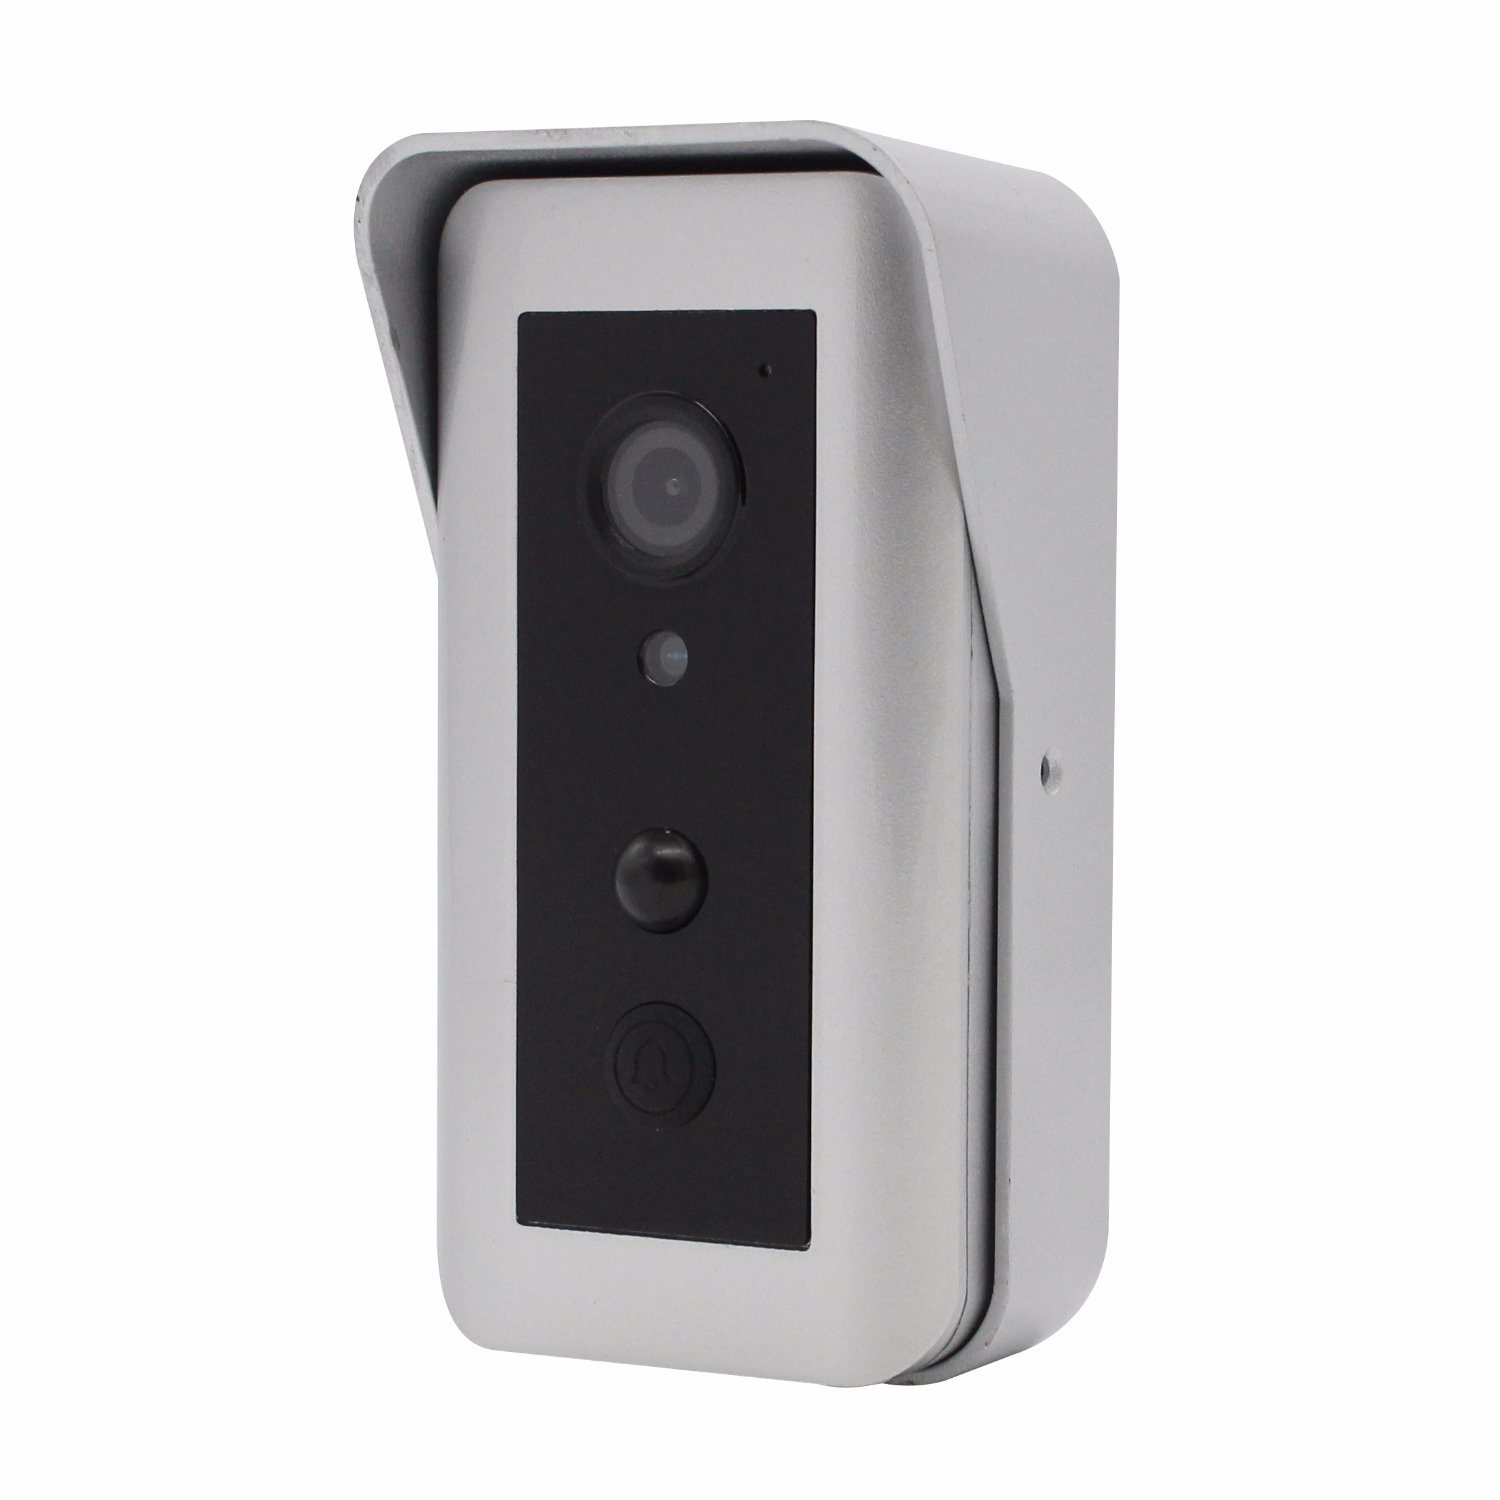 Outdoor Waterproof Wireless WiFi IP Video Door Phone